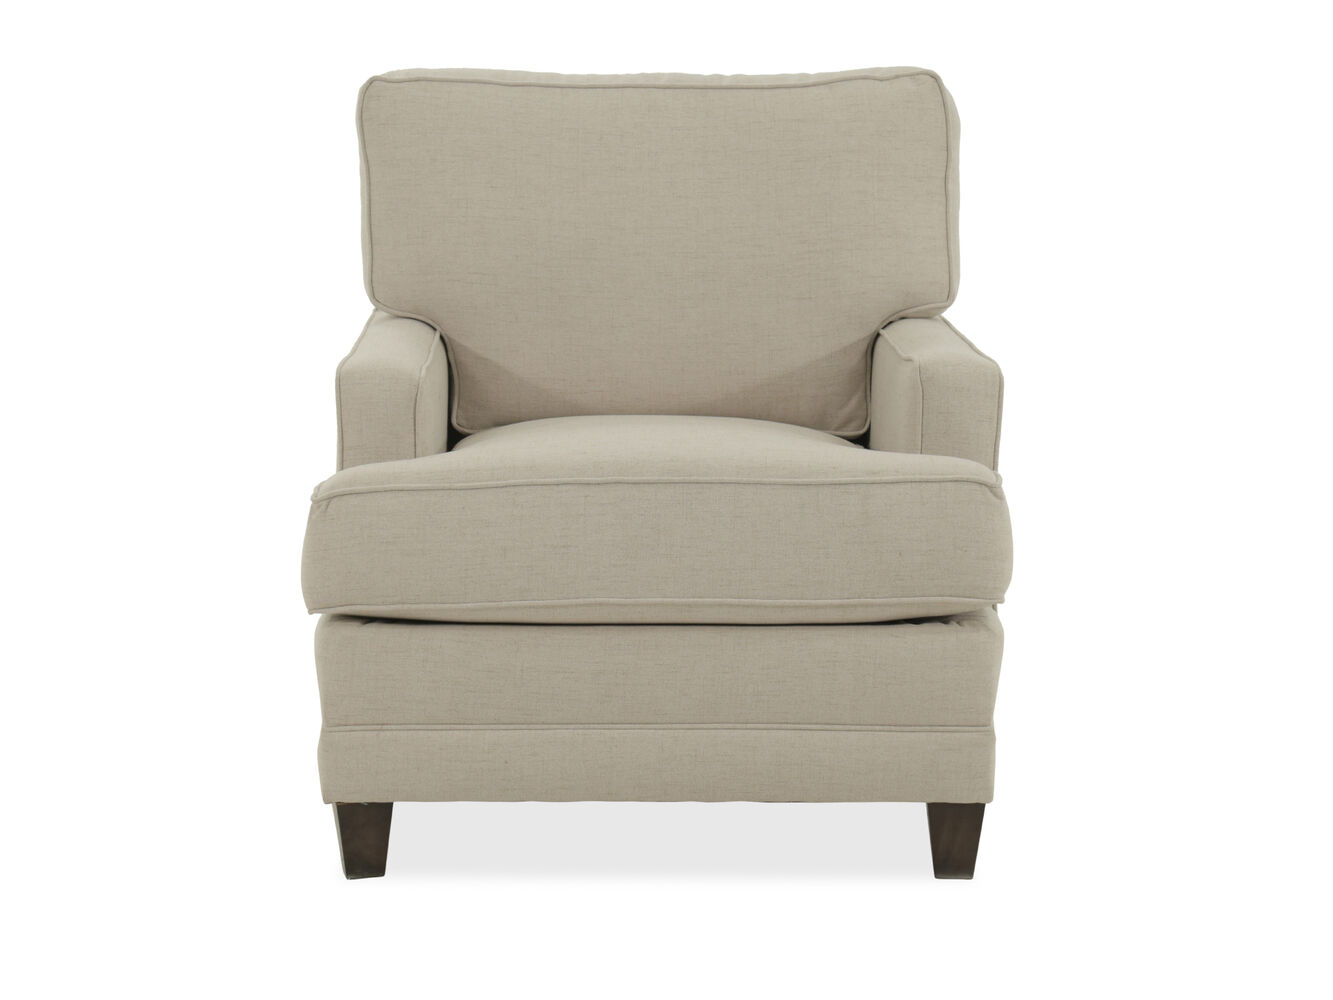 casual 32 chair in beige mathis brothers furniture. Black Bedroom Furniture Sets. Home Design Ideas